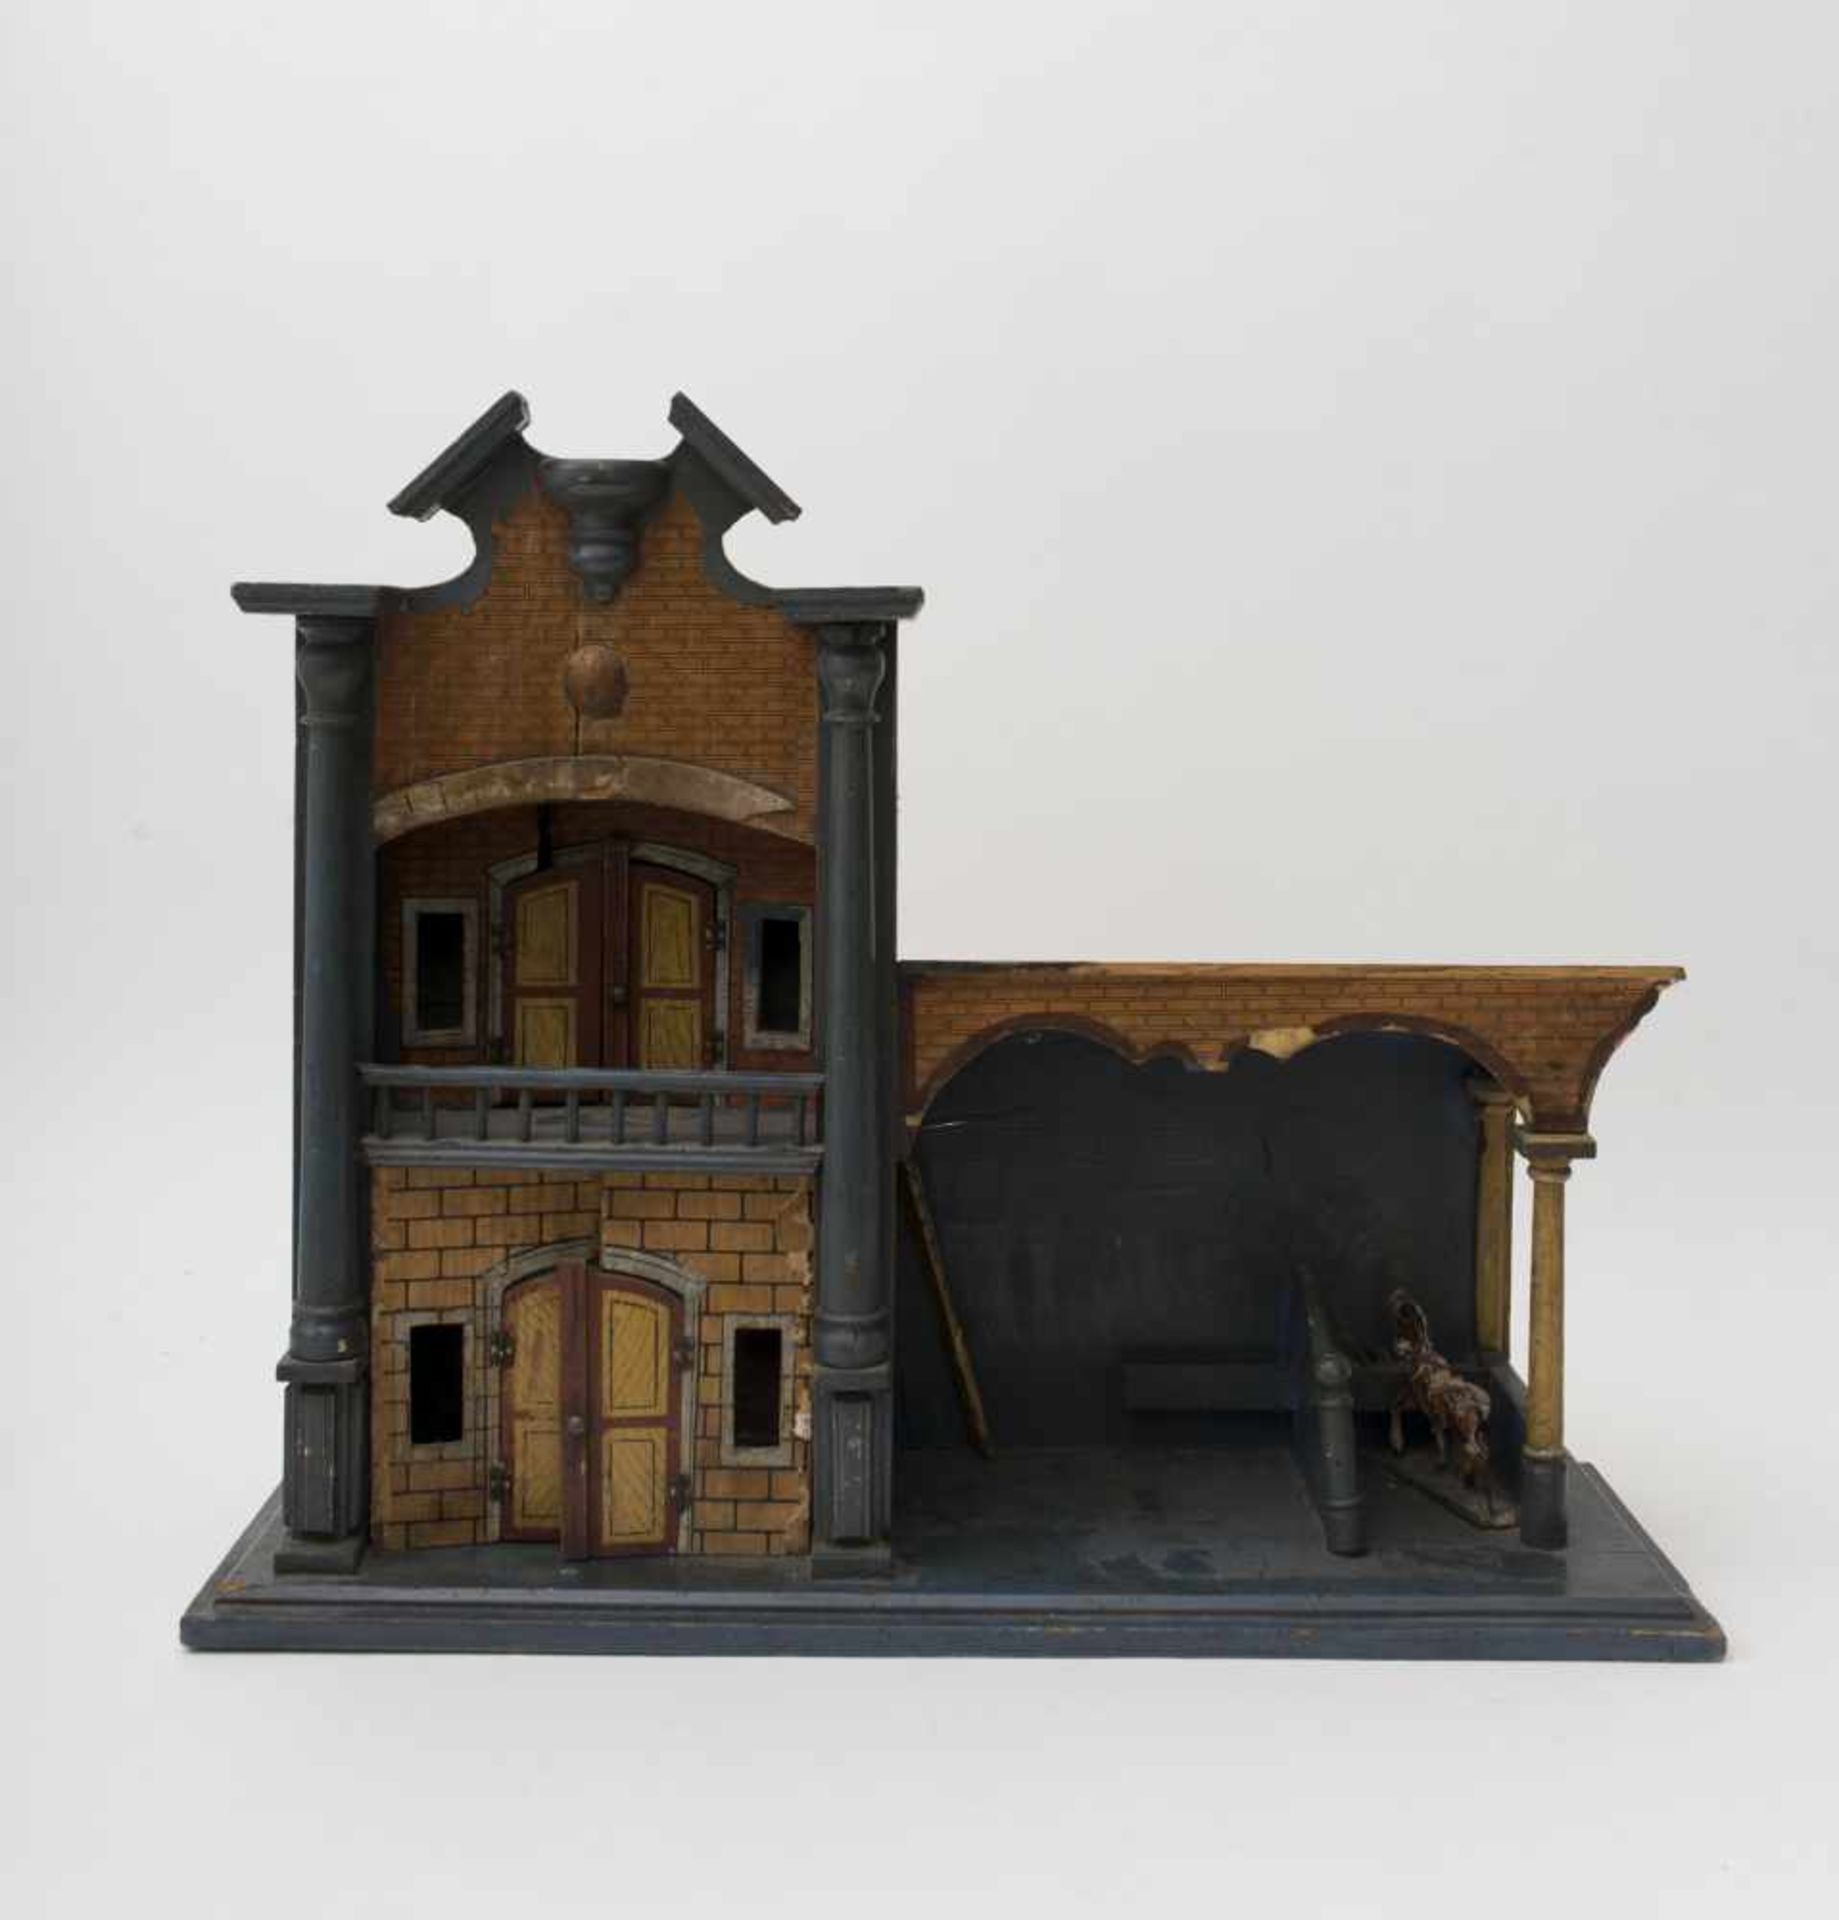 Caretaker's cottage Made of wood and papier collé, with brick and timber décor, stable and horse